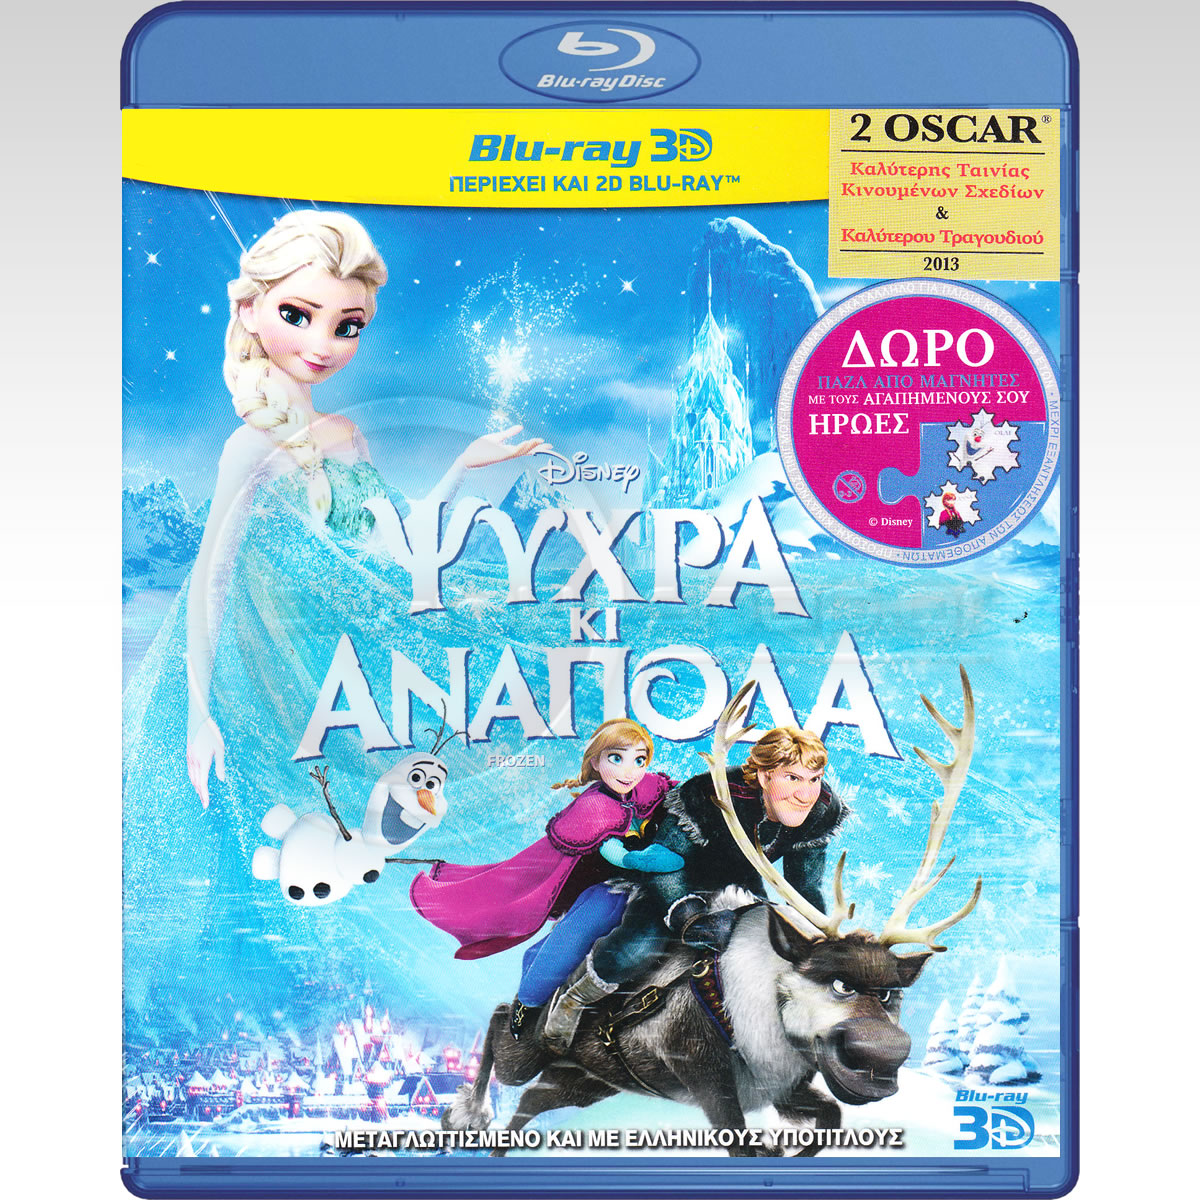 FROZEN 3D Superset - ΨΥΧΡΑ ΚΑΙ ΑΝΑΠΟΔΑ 3D Superset (BLU-RAY 3D + BLU-RAY) & ΣΤΑ ΕΛΛΗΝΙΚΑ